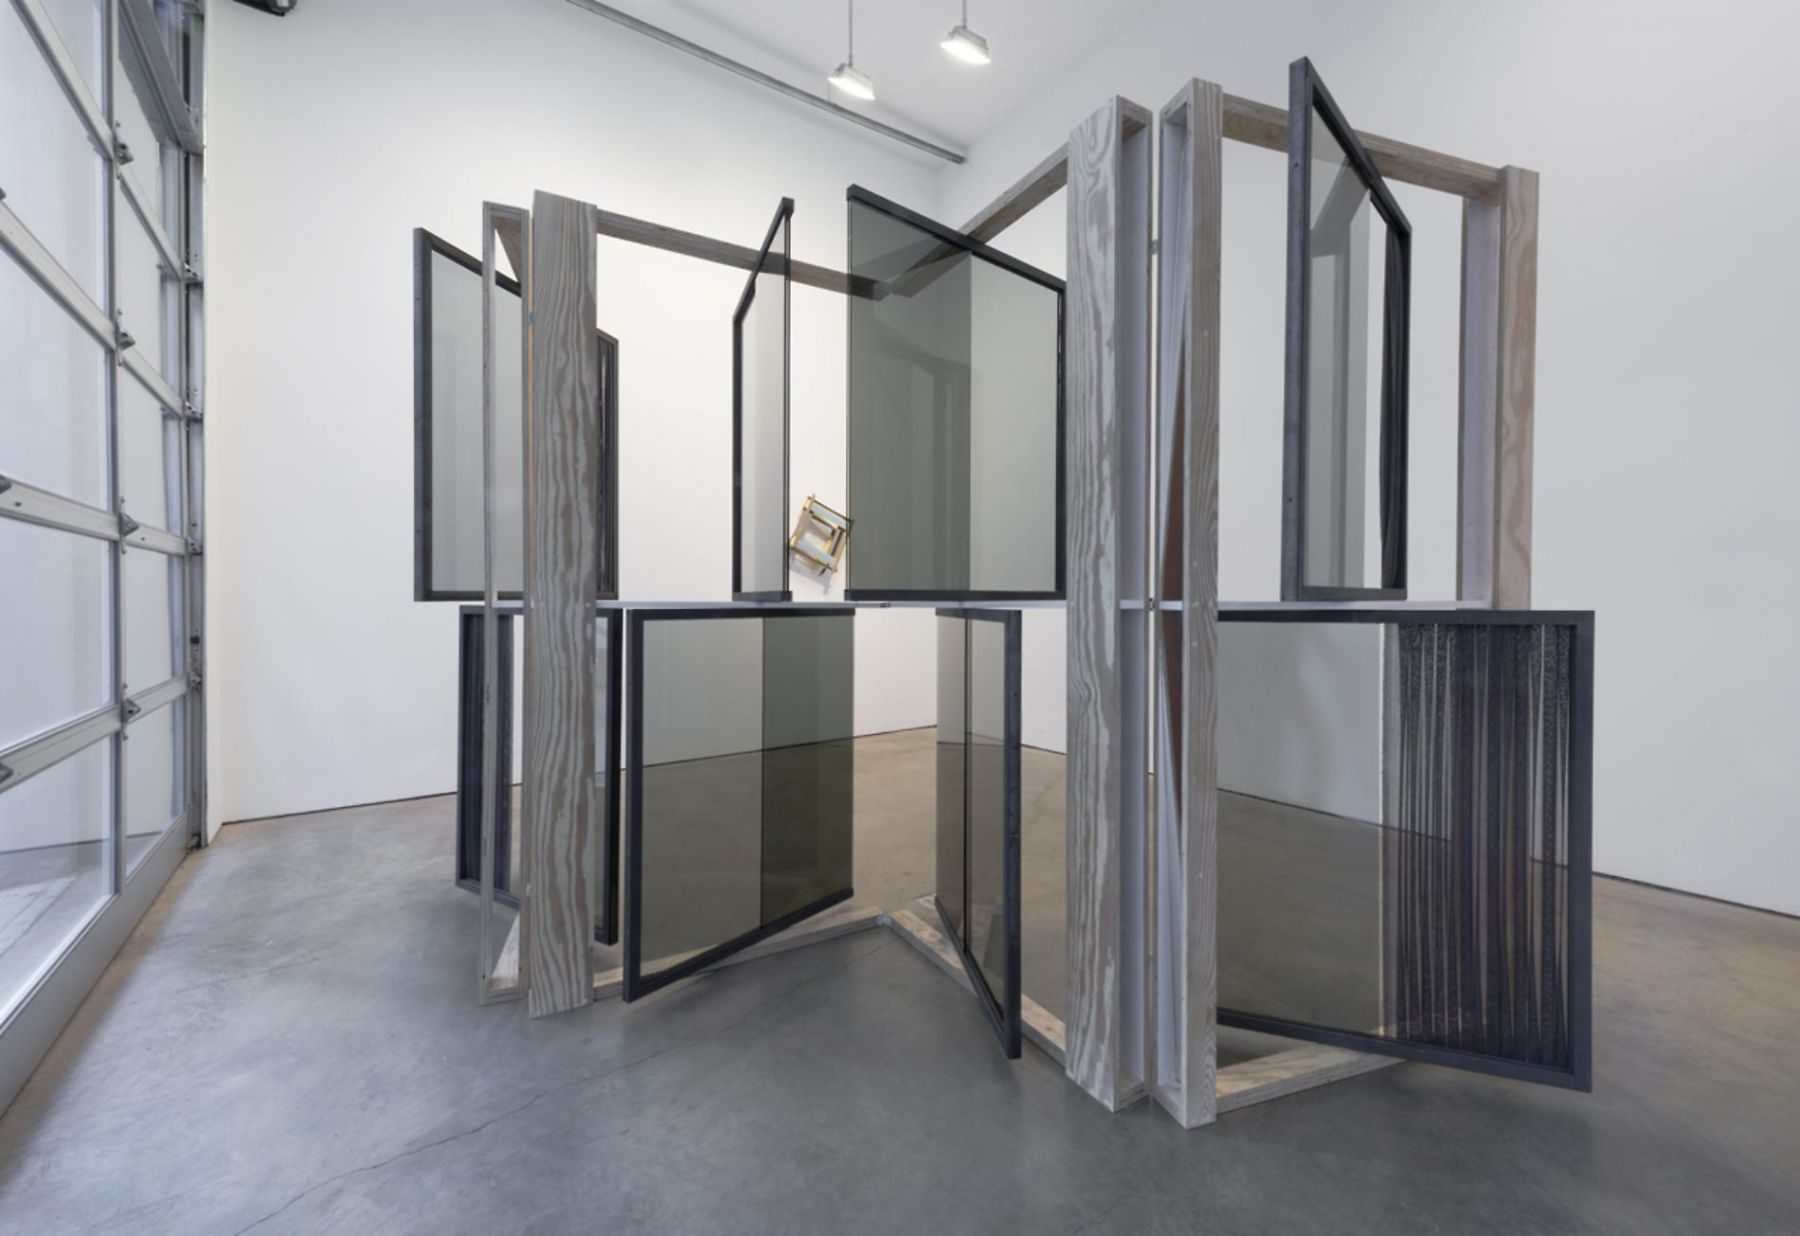 , HEATHER ROWE Suffusion Screen (her thoughts, means, and ends), 2014 Glass, mirror, plywood, wallpaper, paint, steel, fabric 156 x 88 x 24 in. (396.2 x 223.5 x 61 cm)